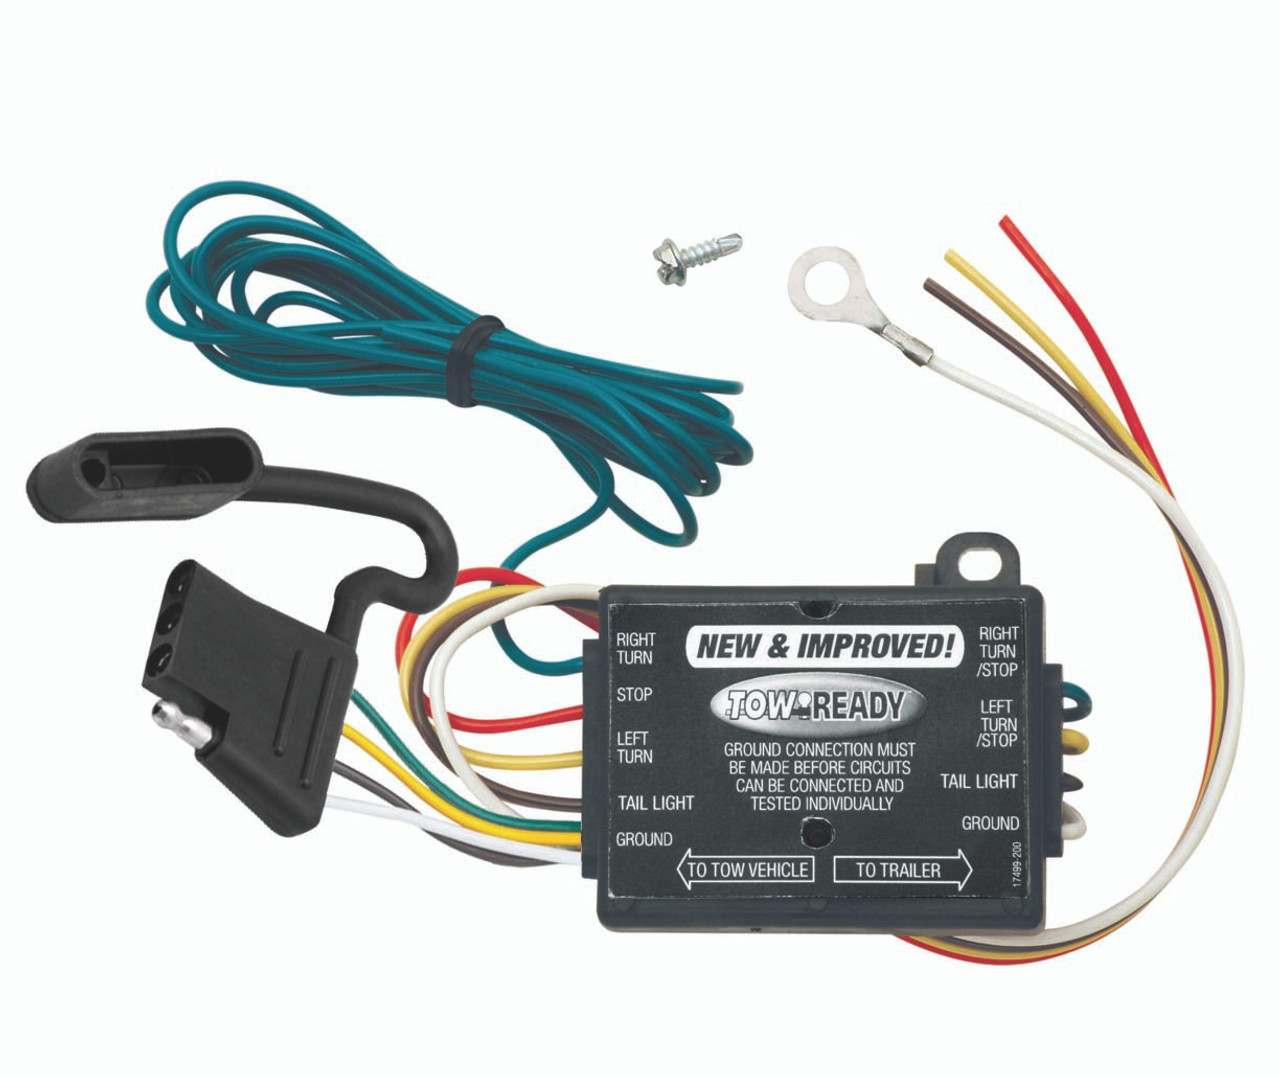 small resolution of 119130 3 wire vehicle to 2 wire trailer upgraded taillight converter